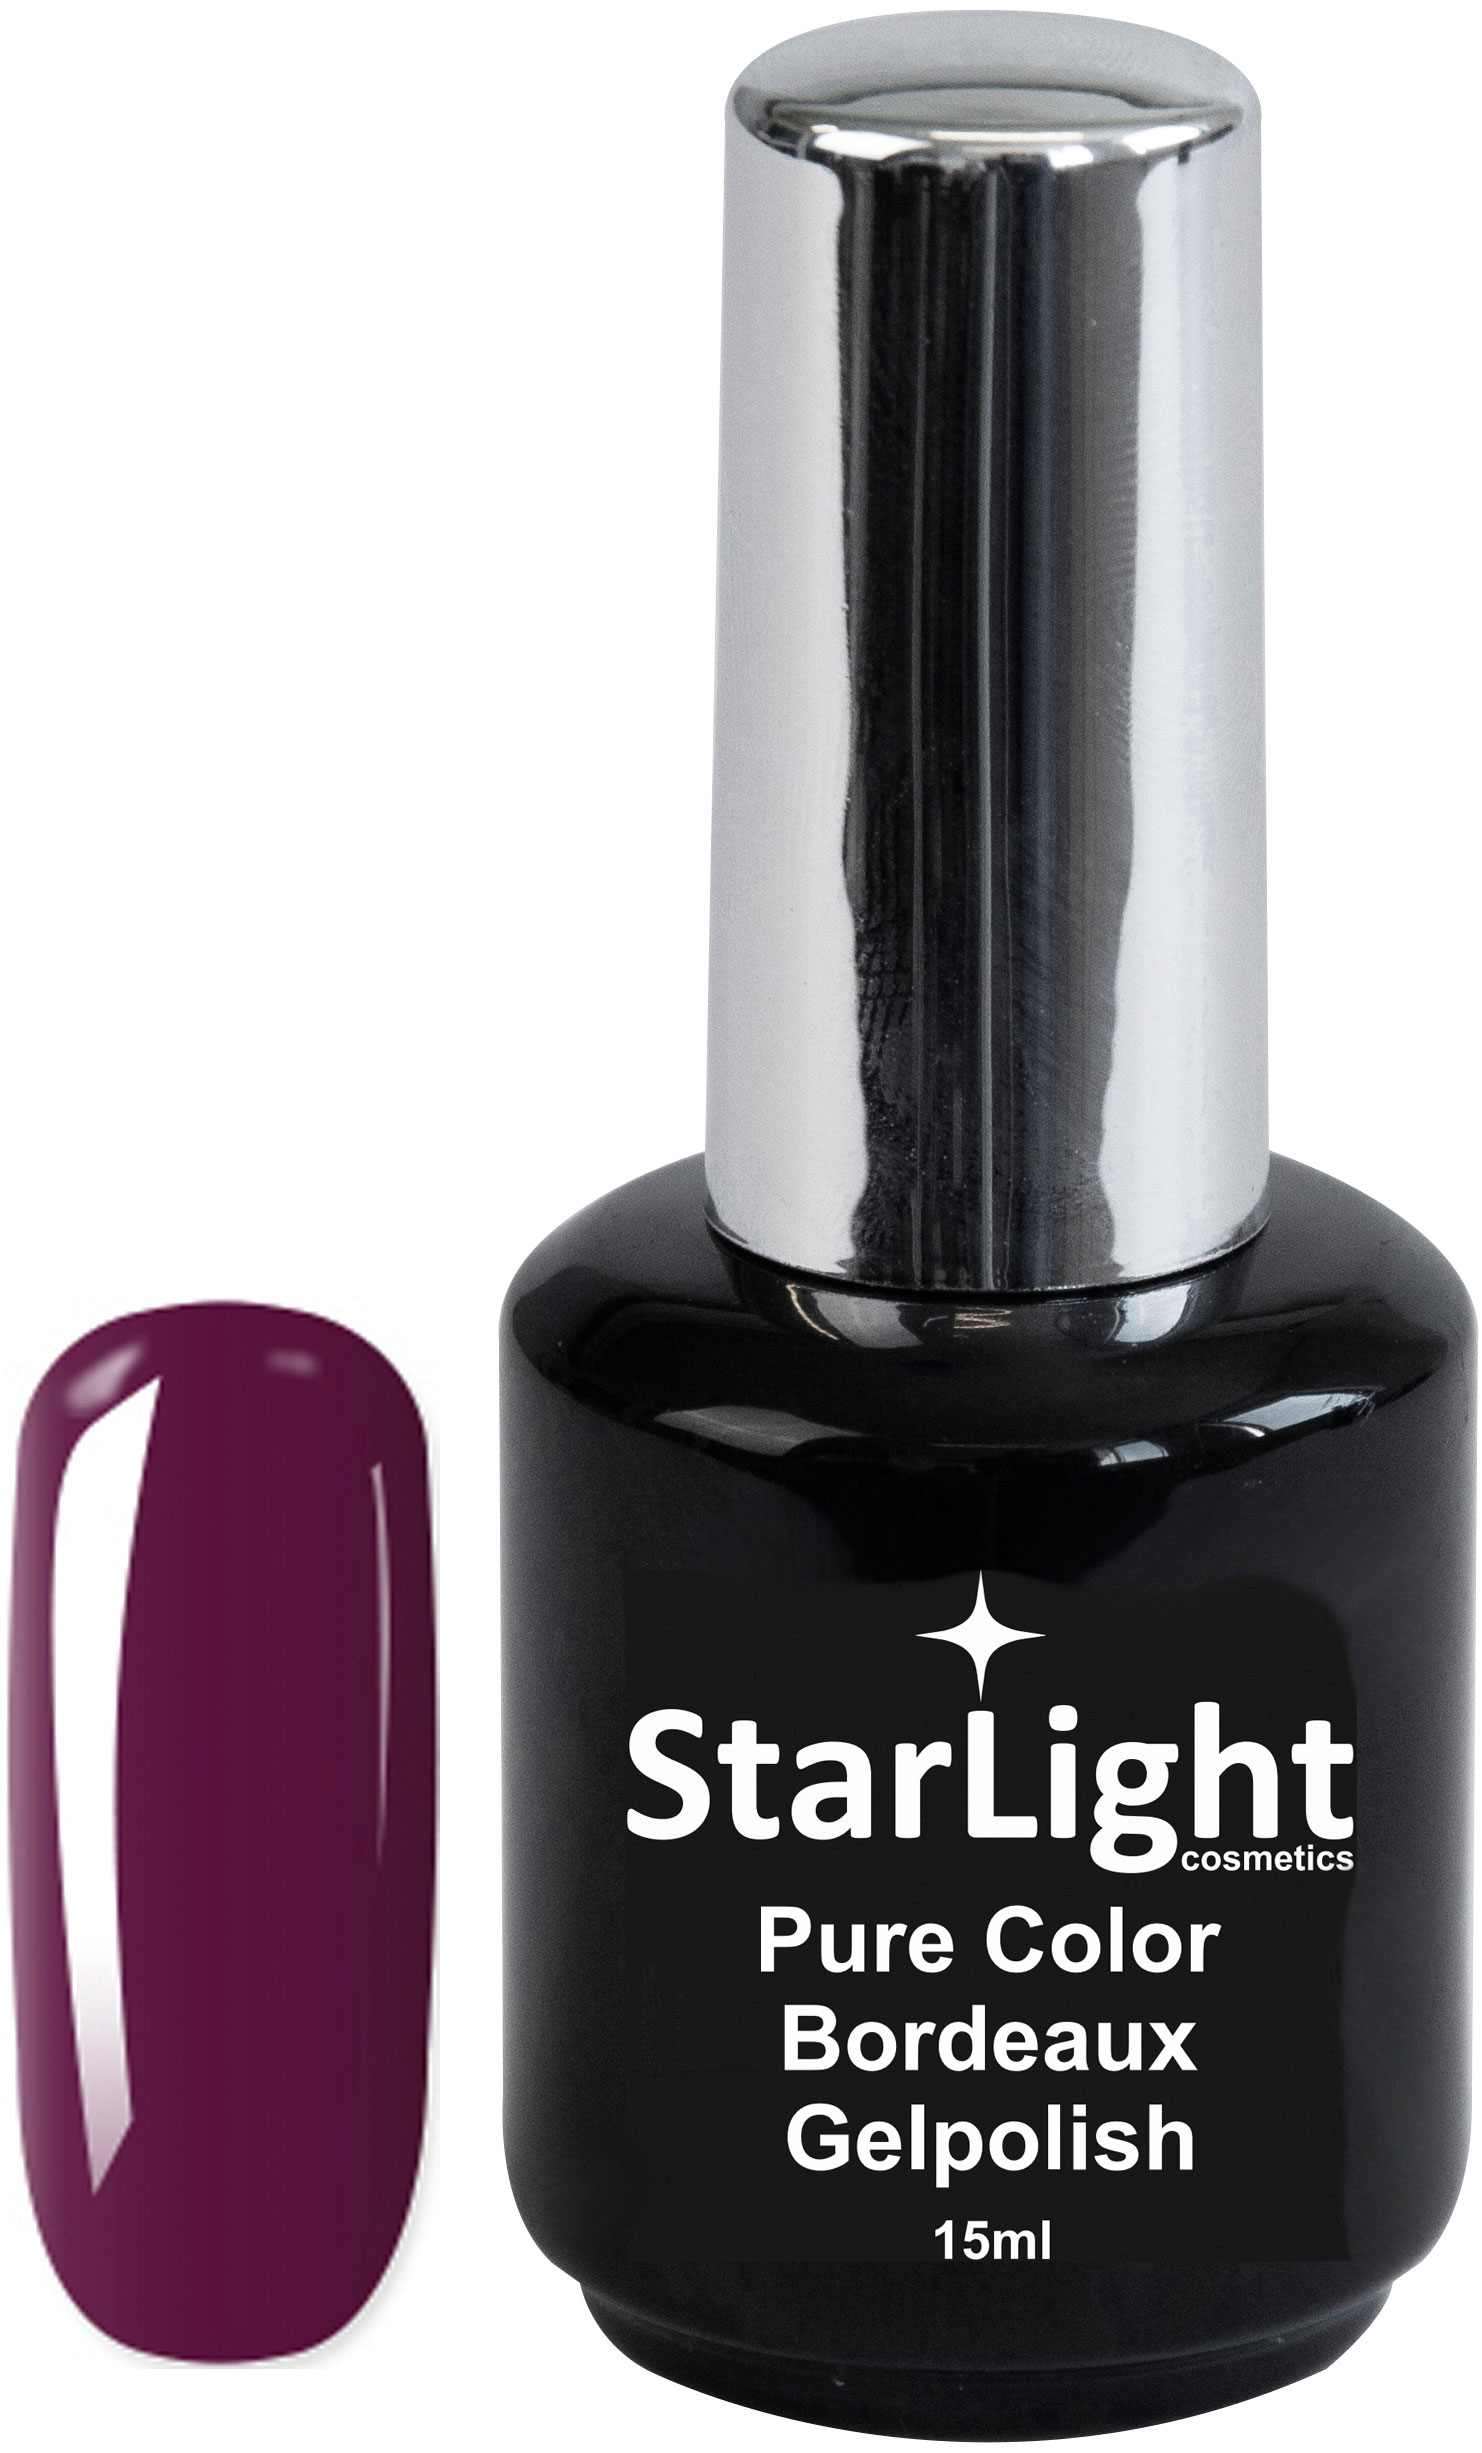 Naglar Gelpolish Pure Color Bordeaux - 15 ml